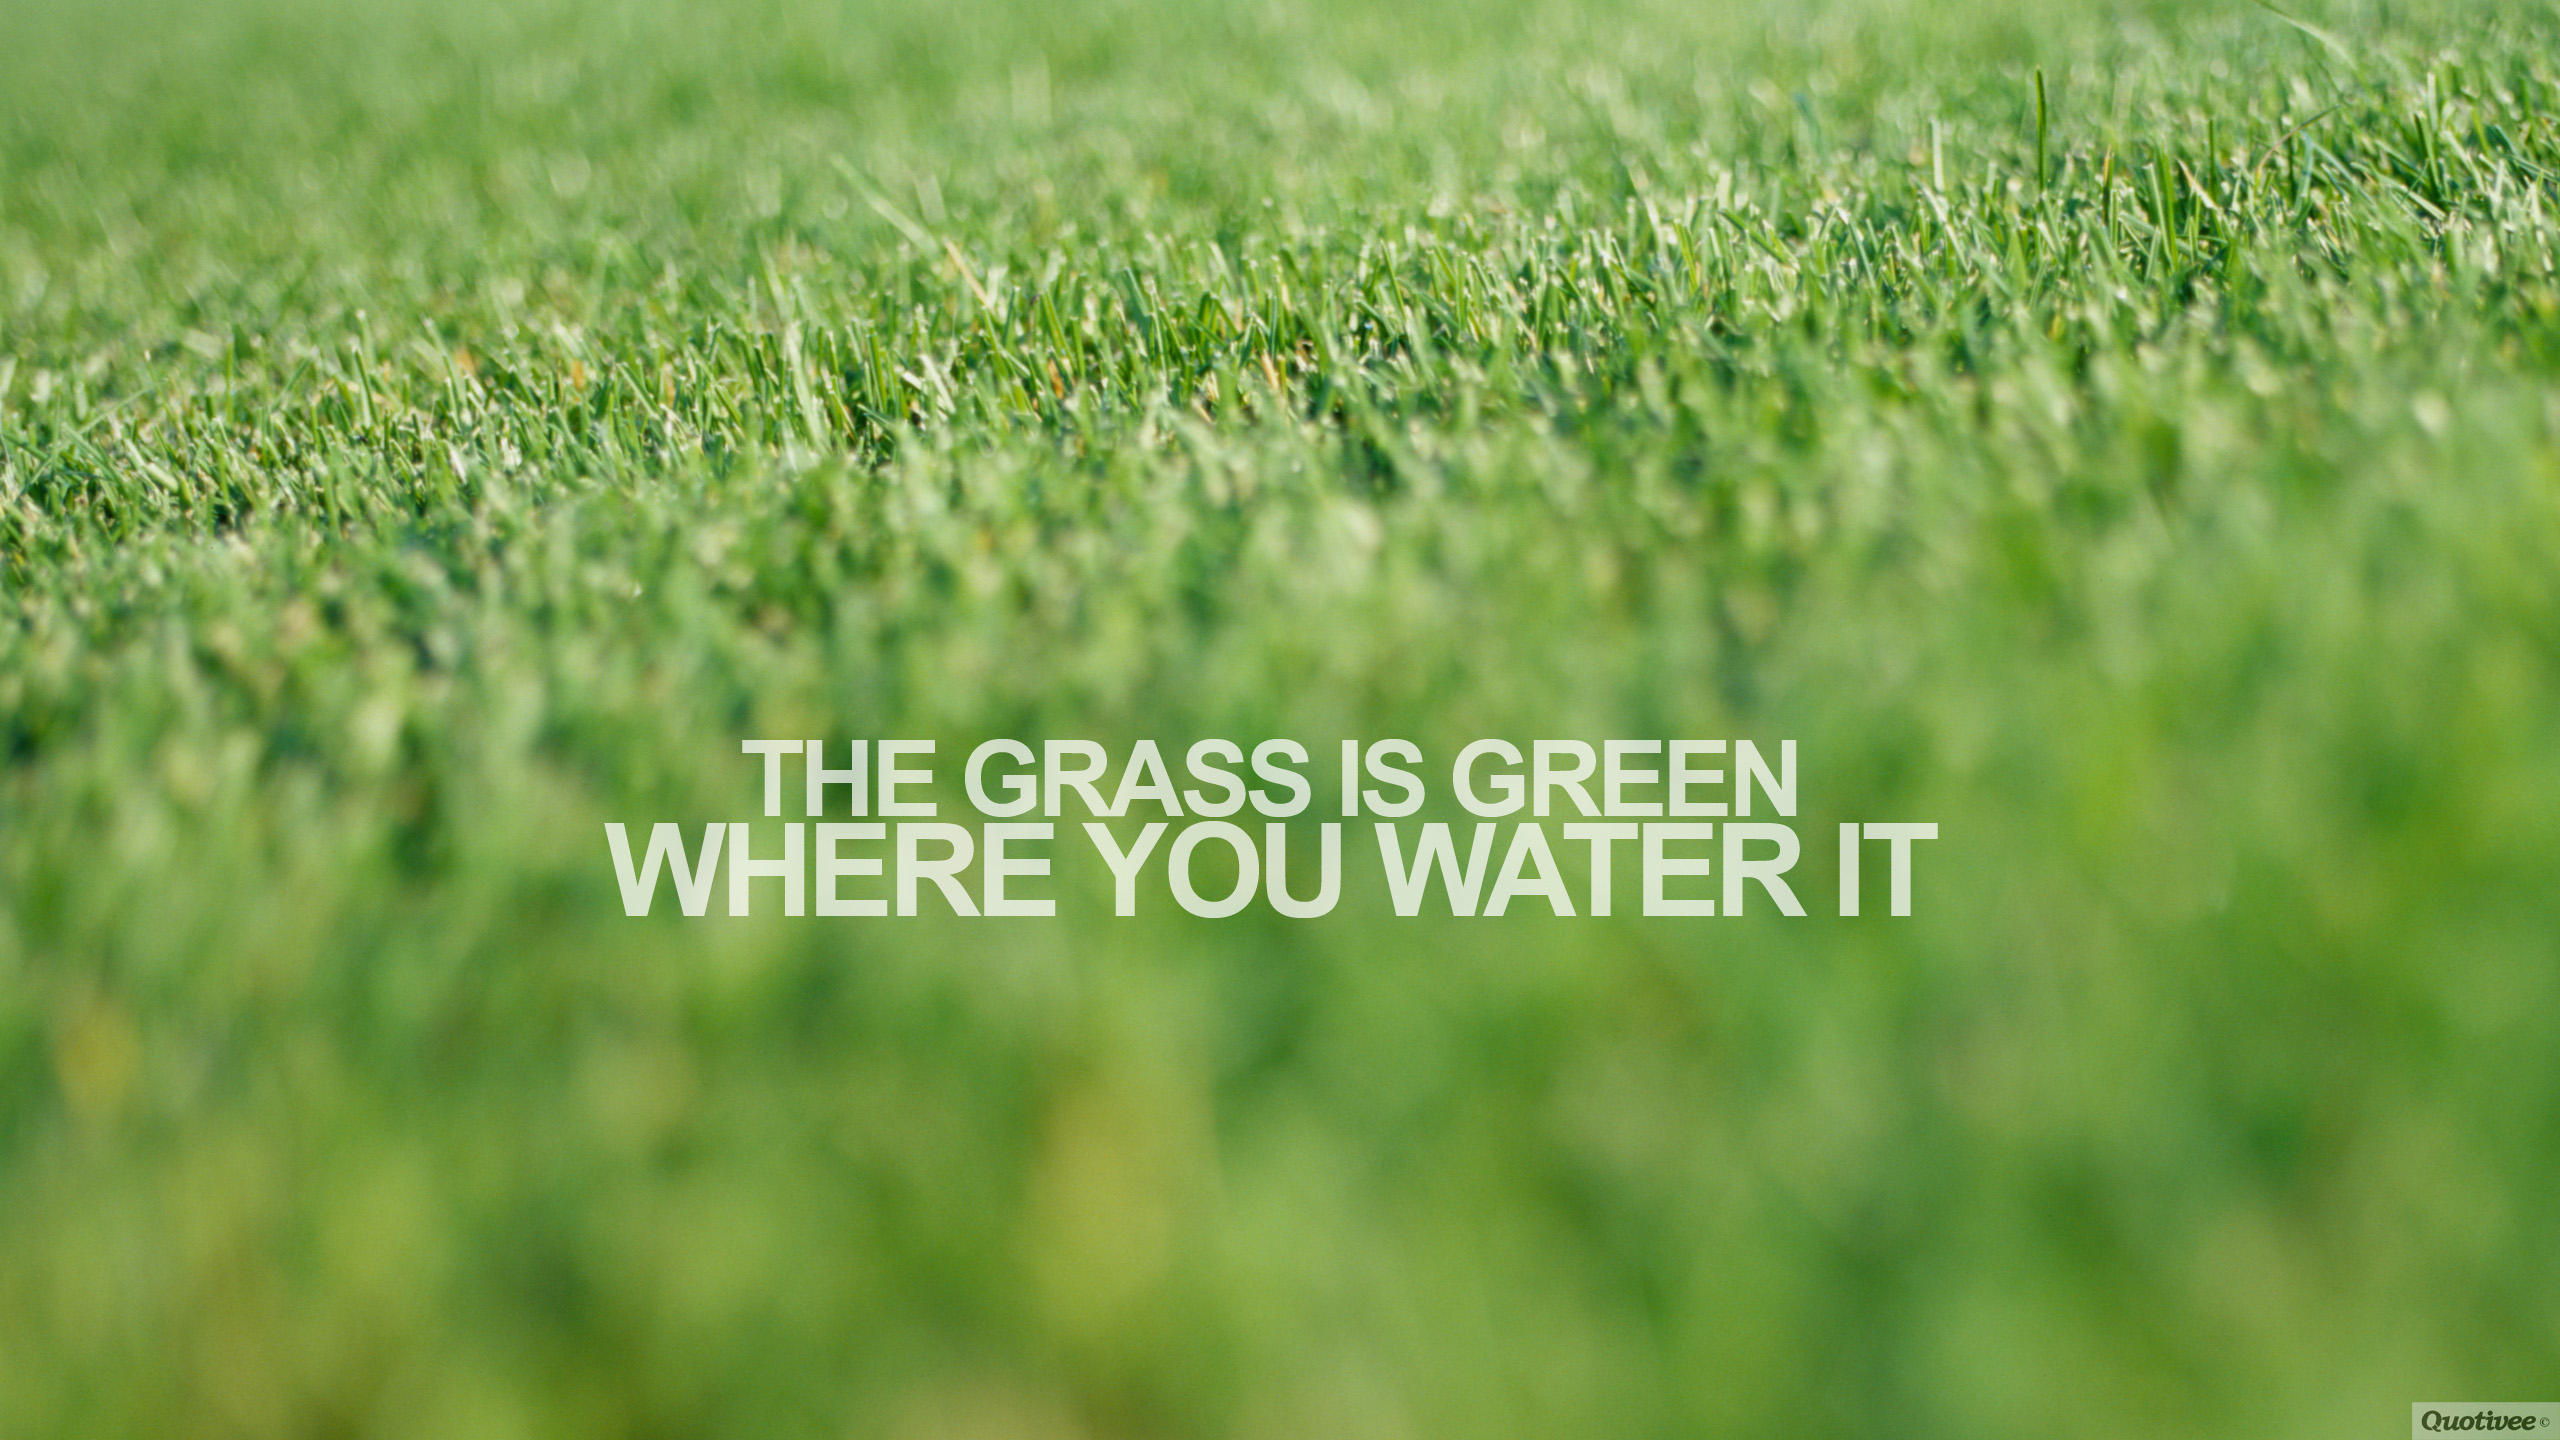 where the grass is green